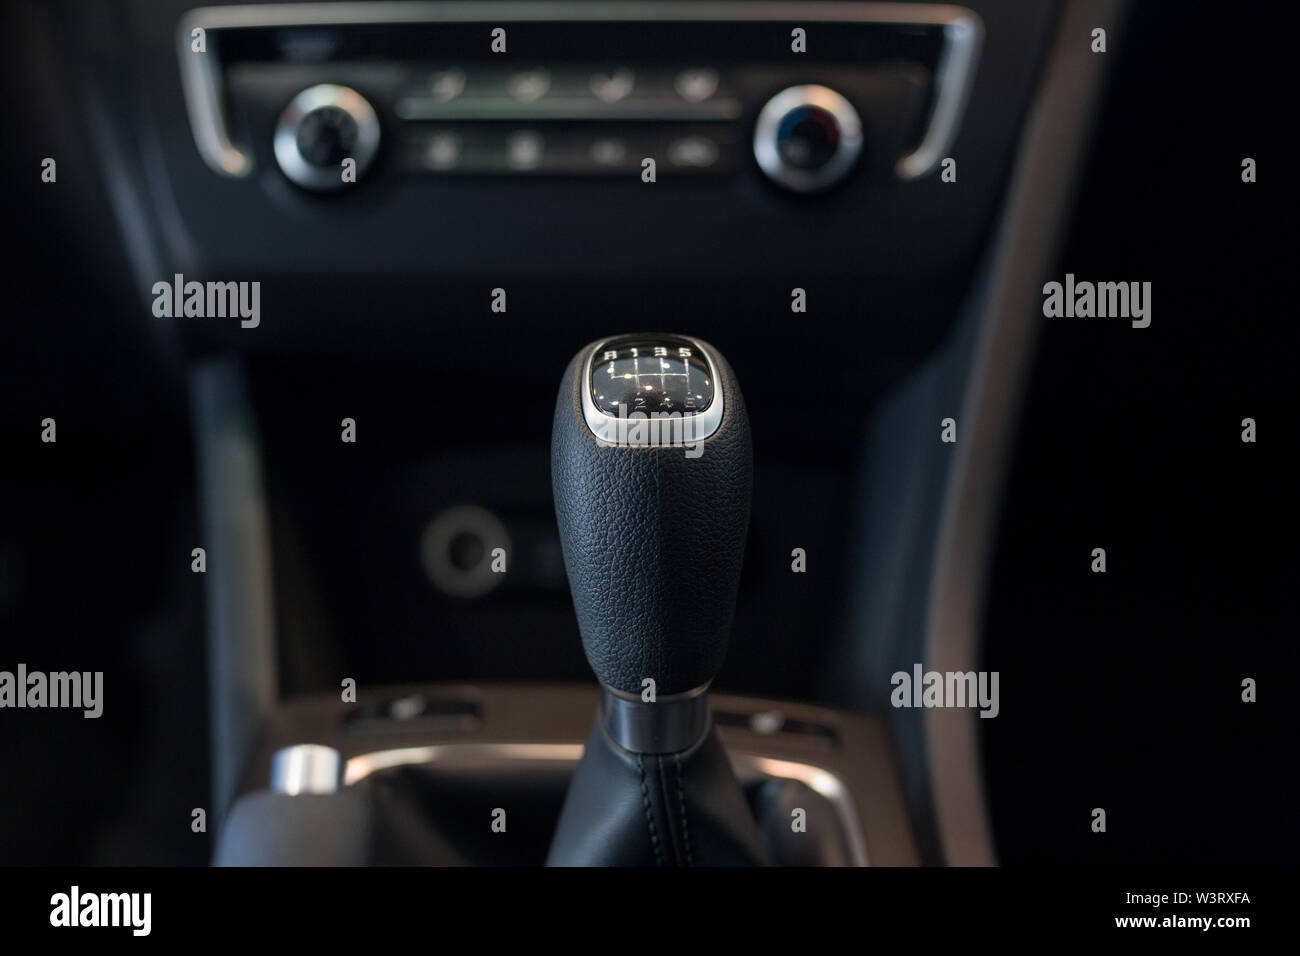 modern cars with manual transmission